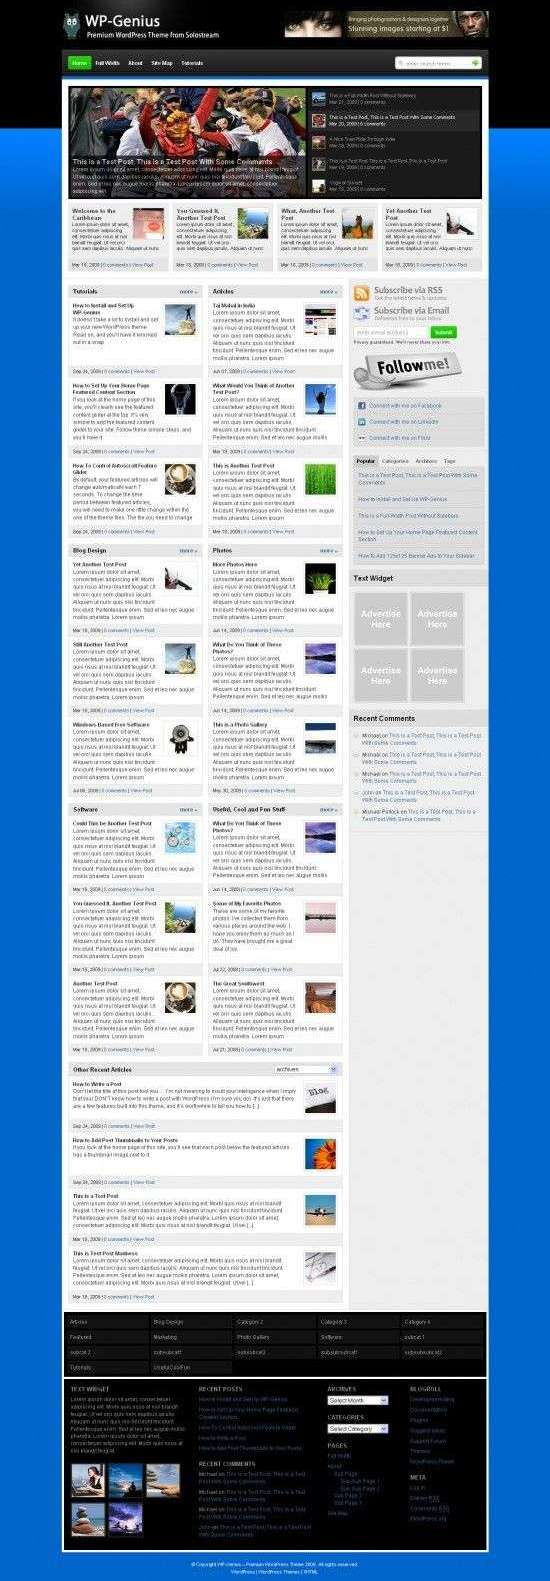 WP Genius Solostream 550x1586 - WP-Genius Premium Wordpress Theme